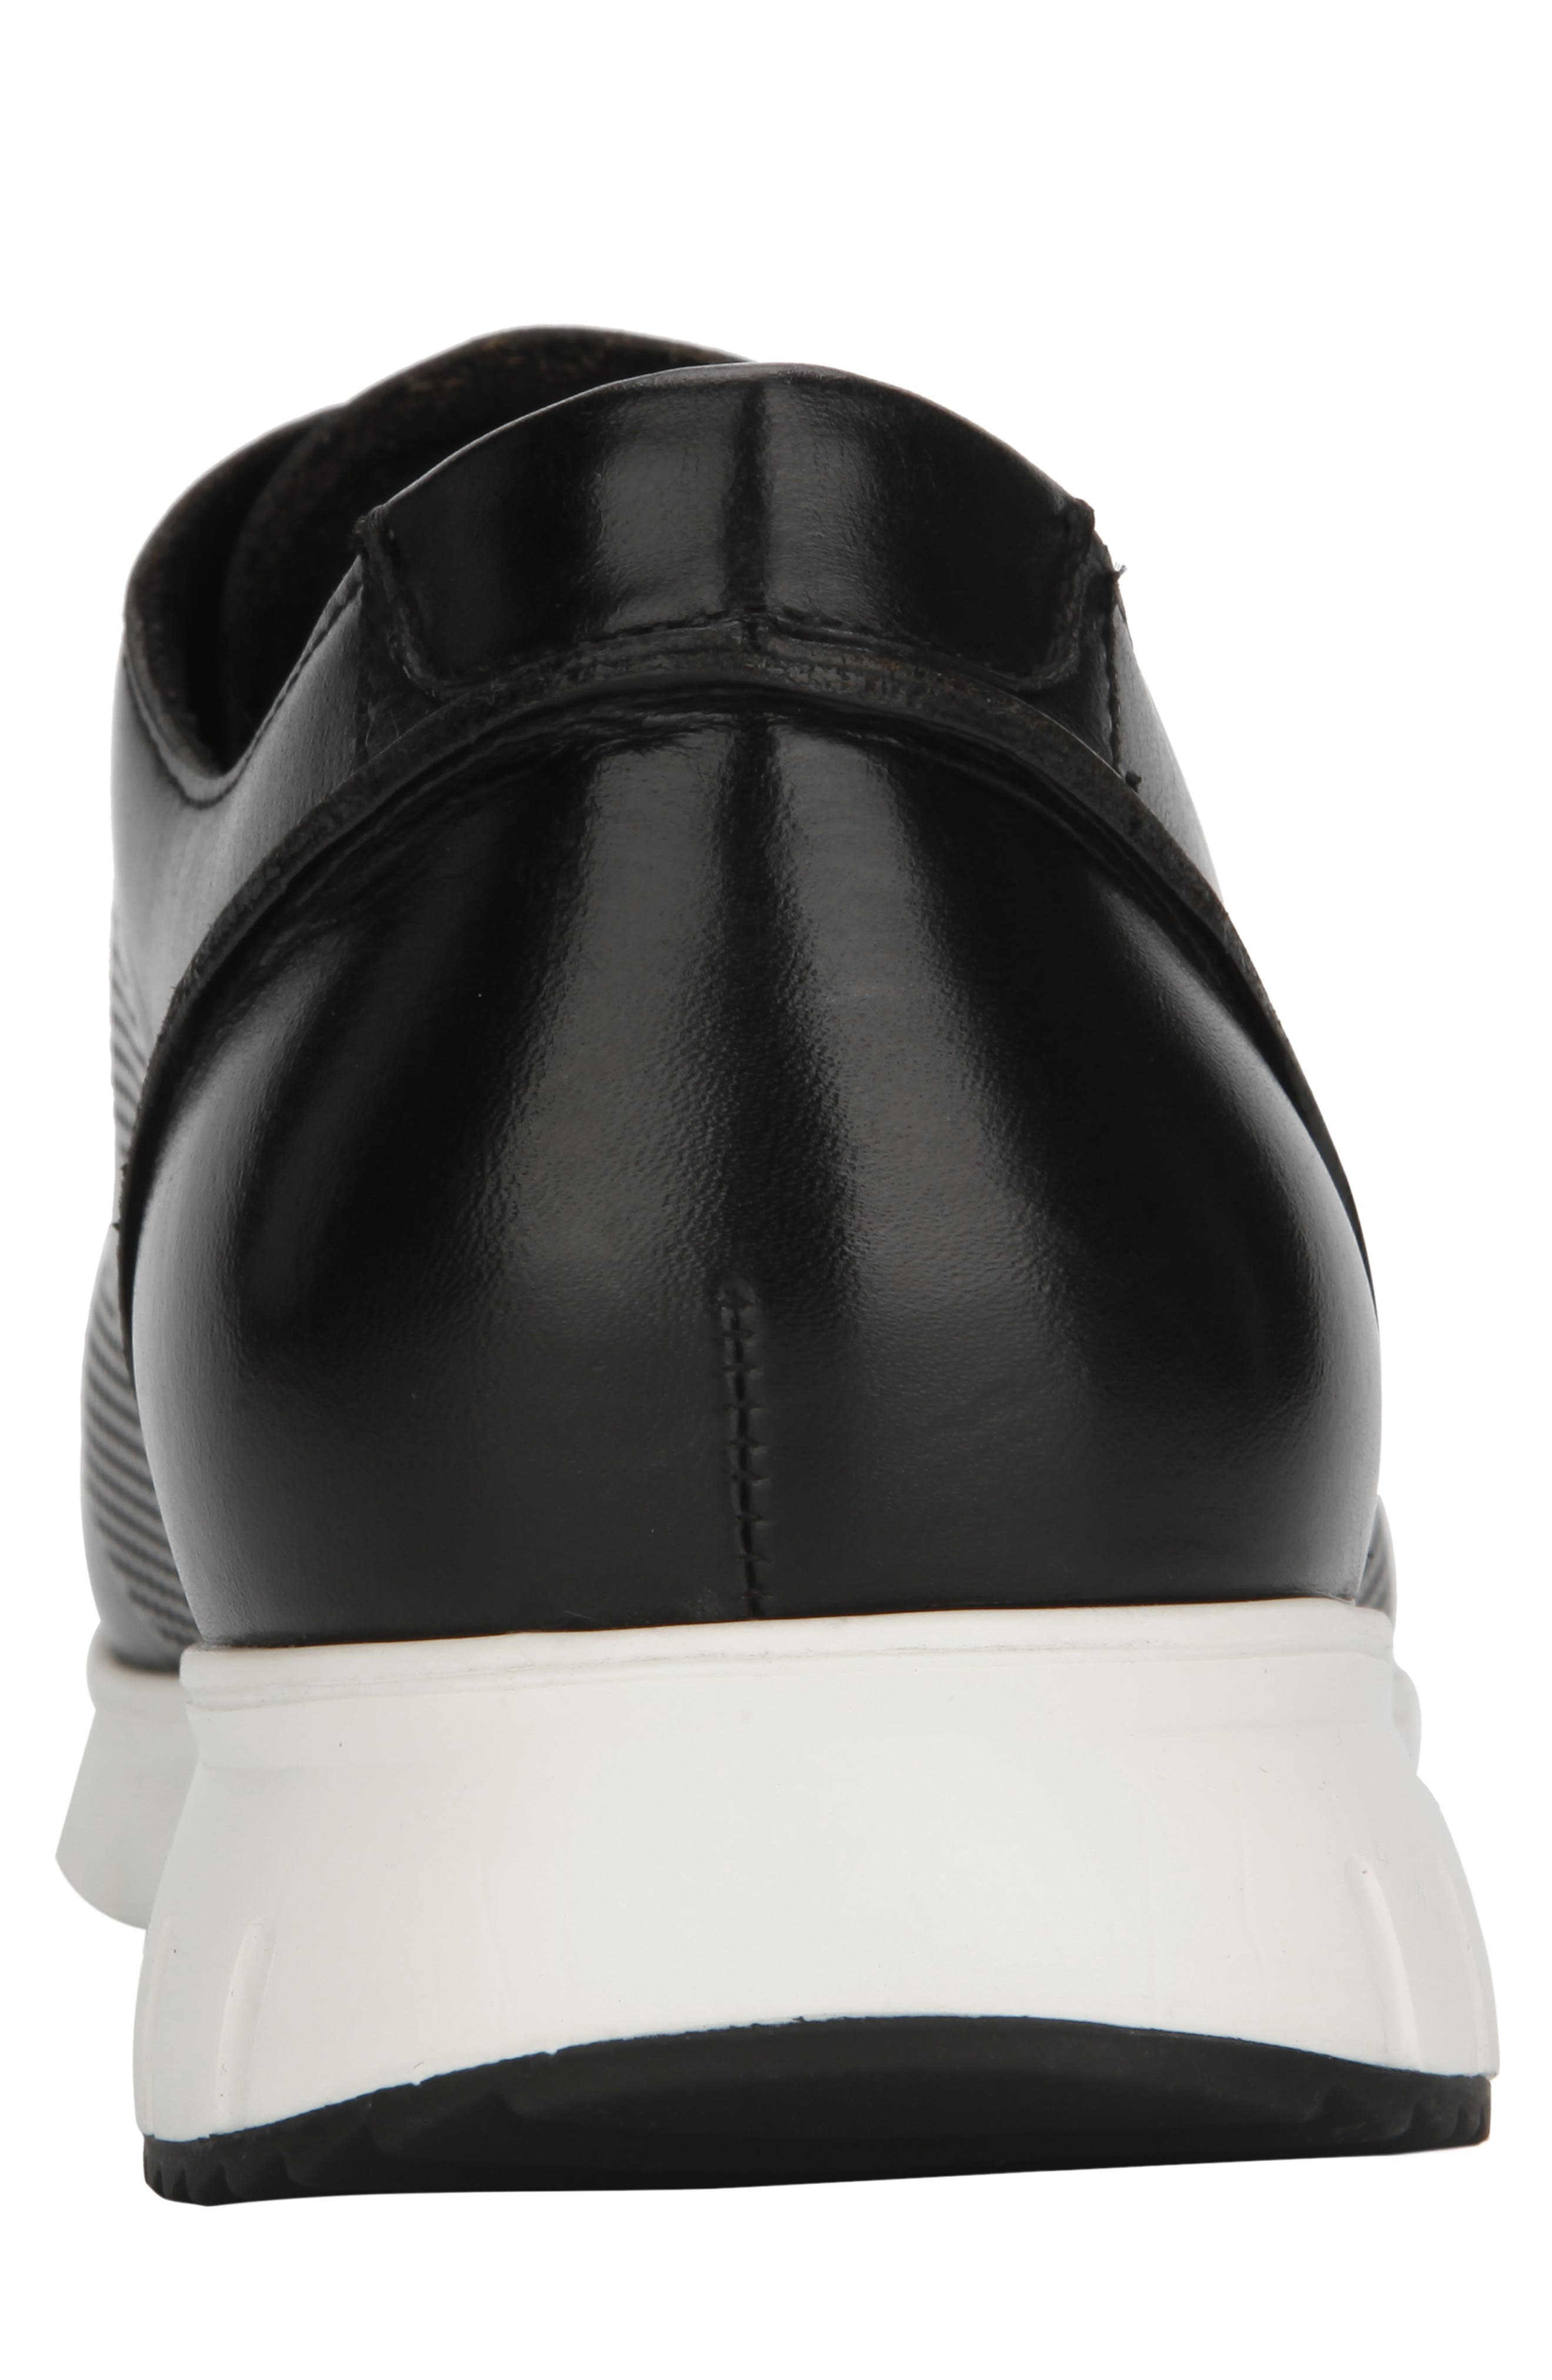 KENNETH COLE NEW YORK, Bailey Sneaker, Alternate thumbnail 5, color, BLACK LASERED LEATHER